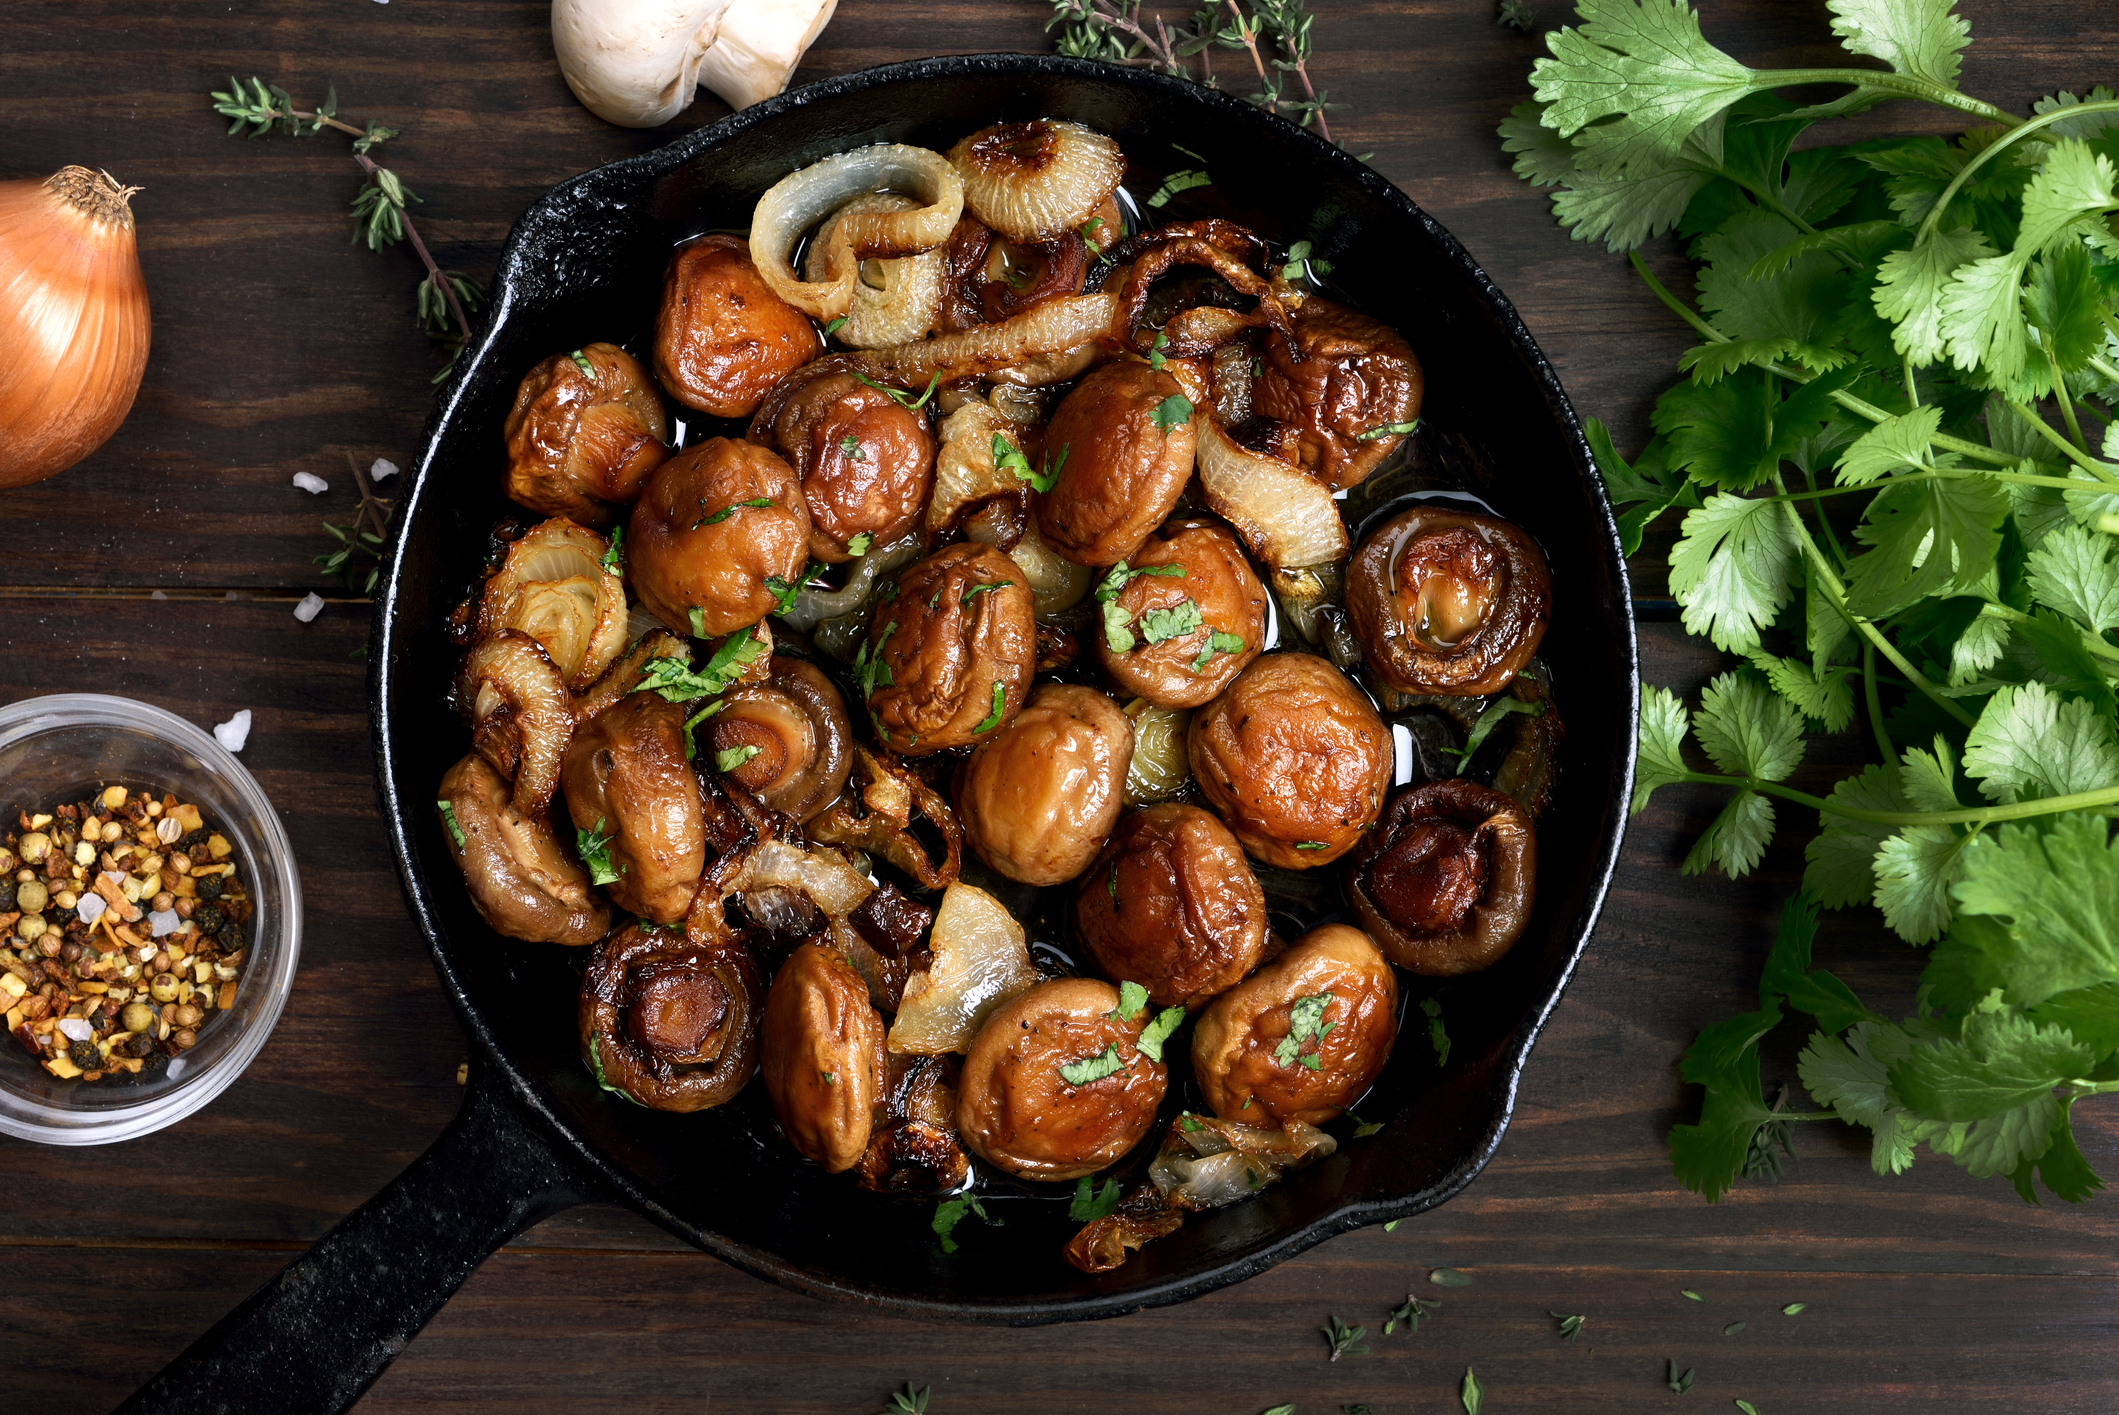 Glazed Shallots & Mushrooms